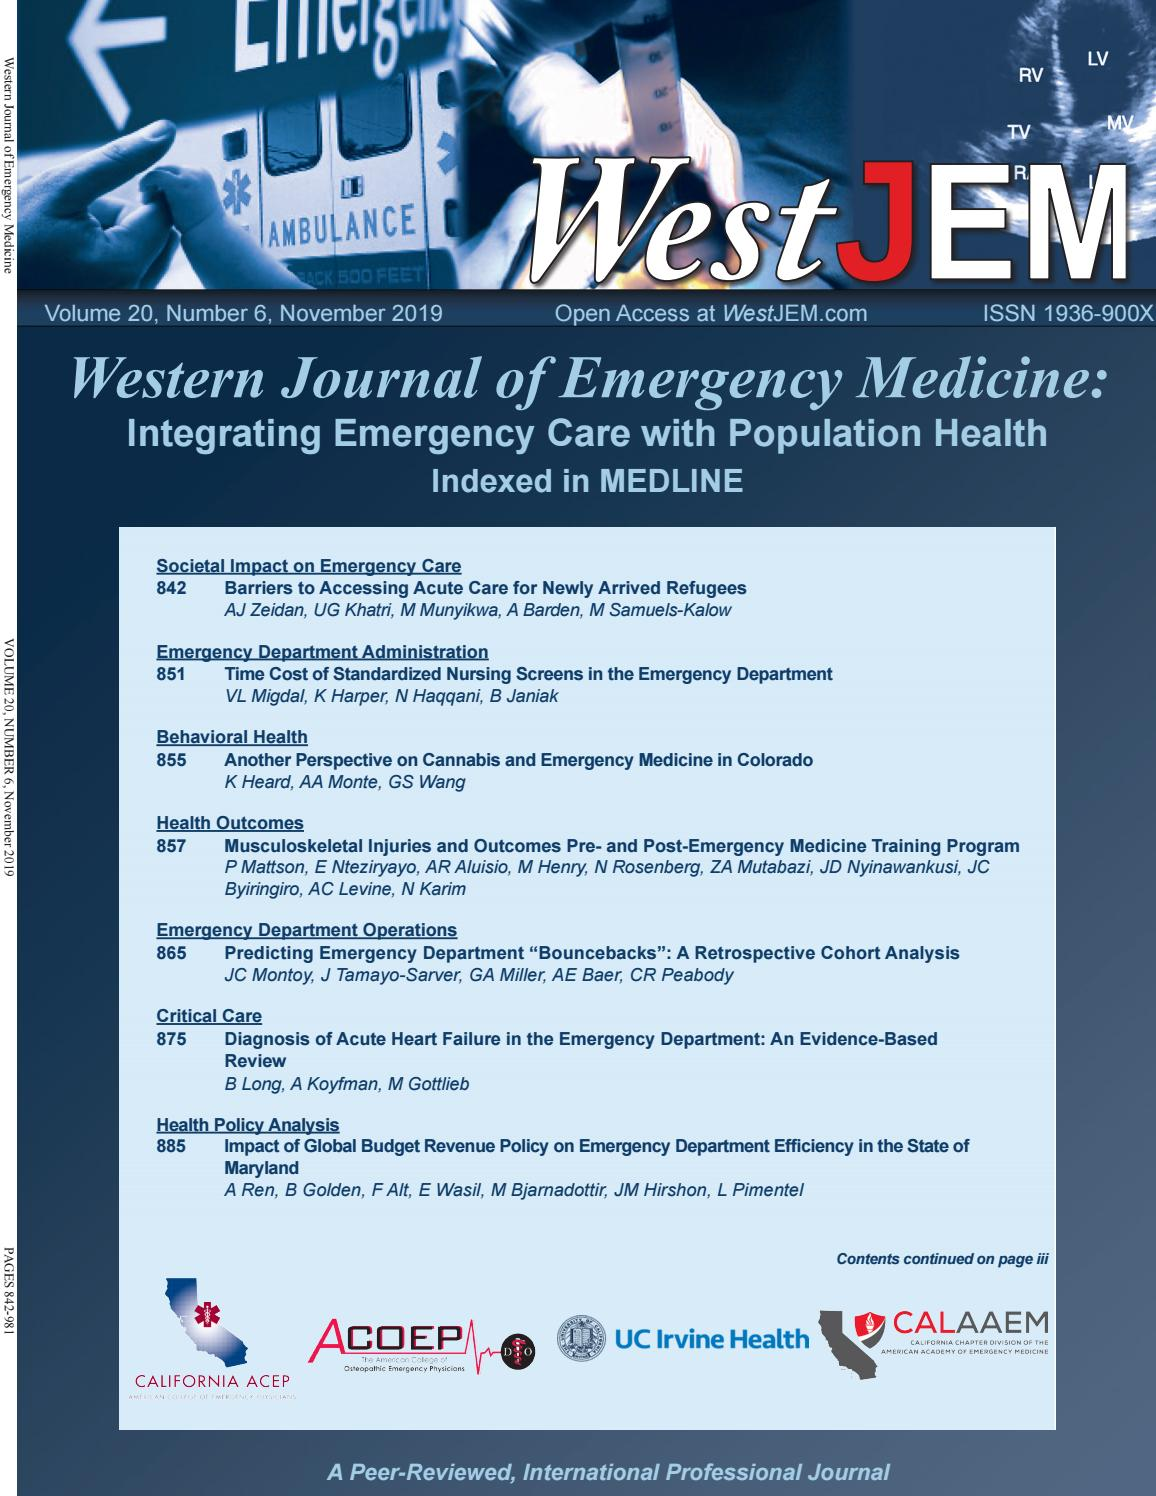 Volume 20, Issue 6 by Western Journal of Emergency Medicine - issuu